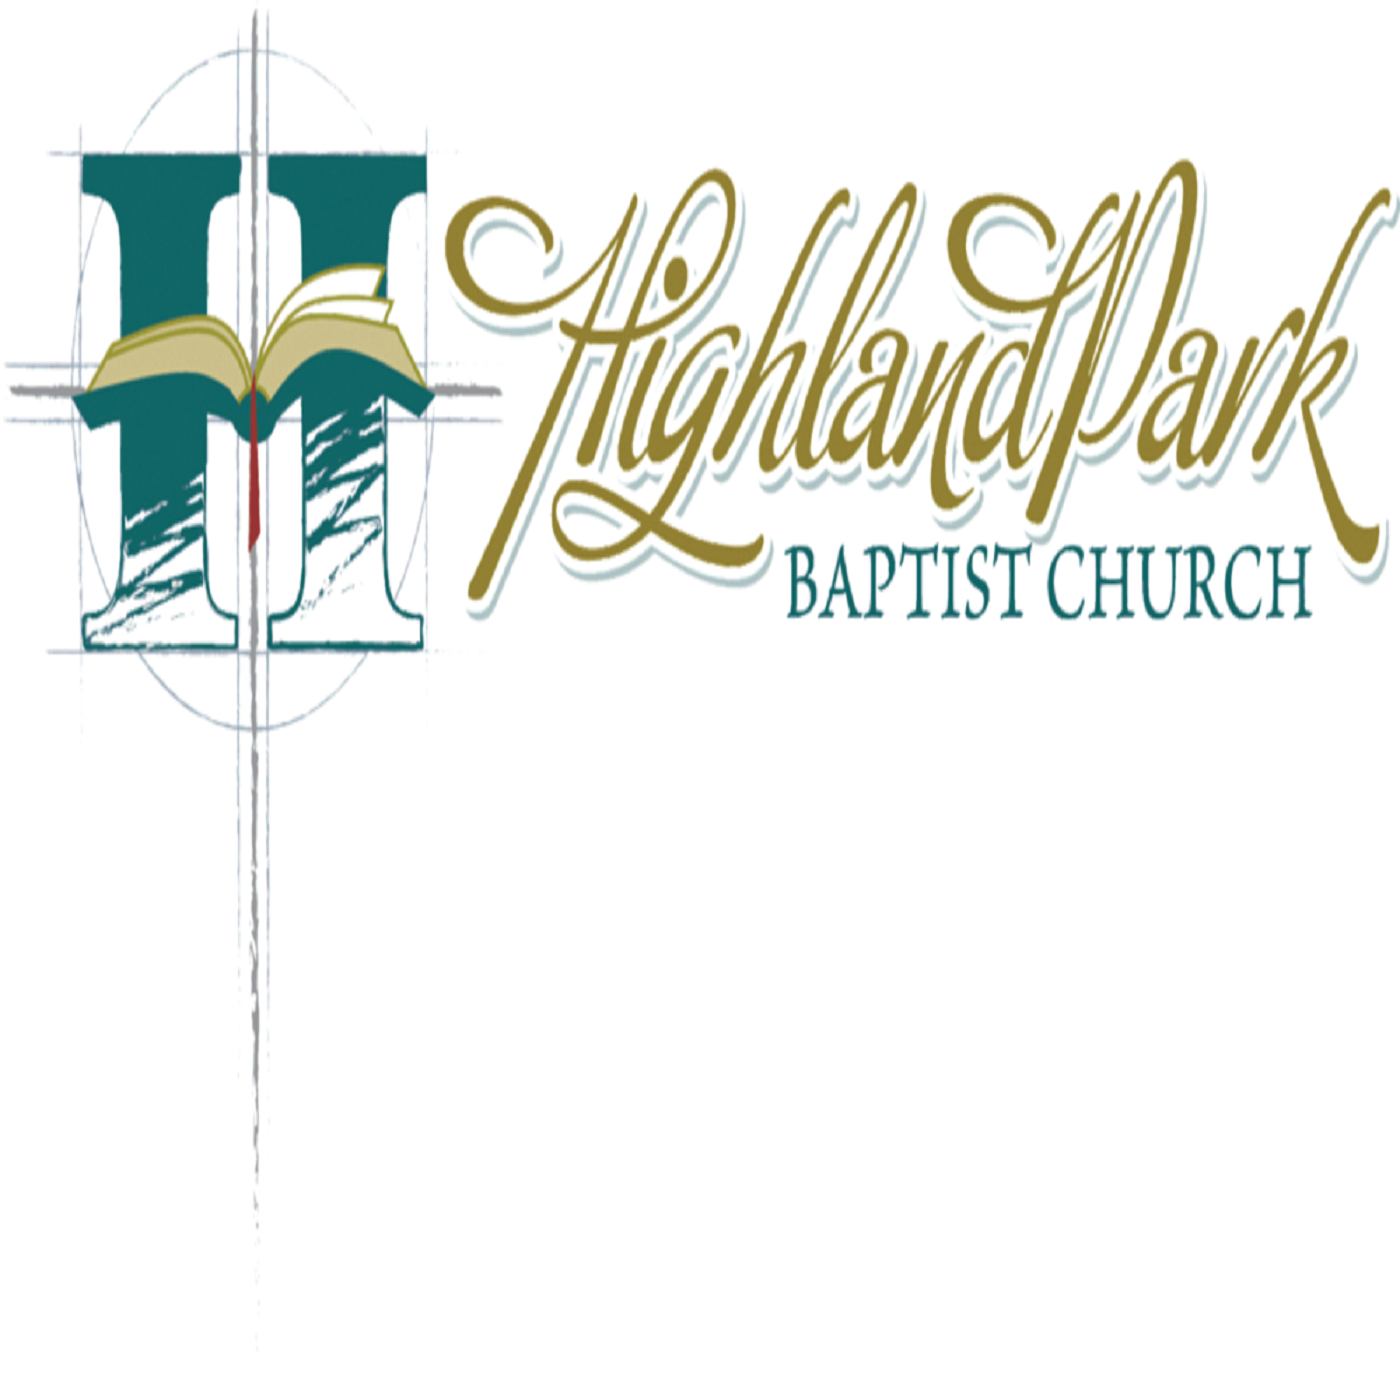 Sermon Archive - Highland Park Baptist Church of Columbia, TN